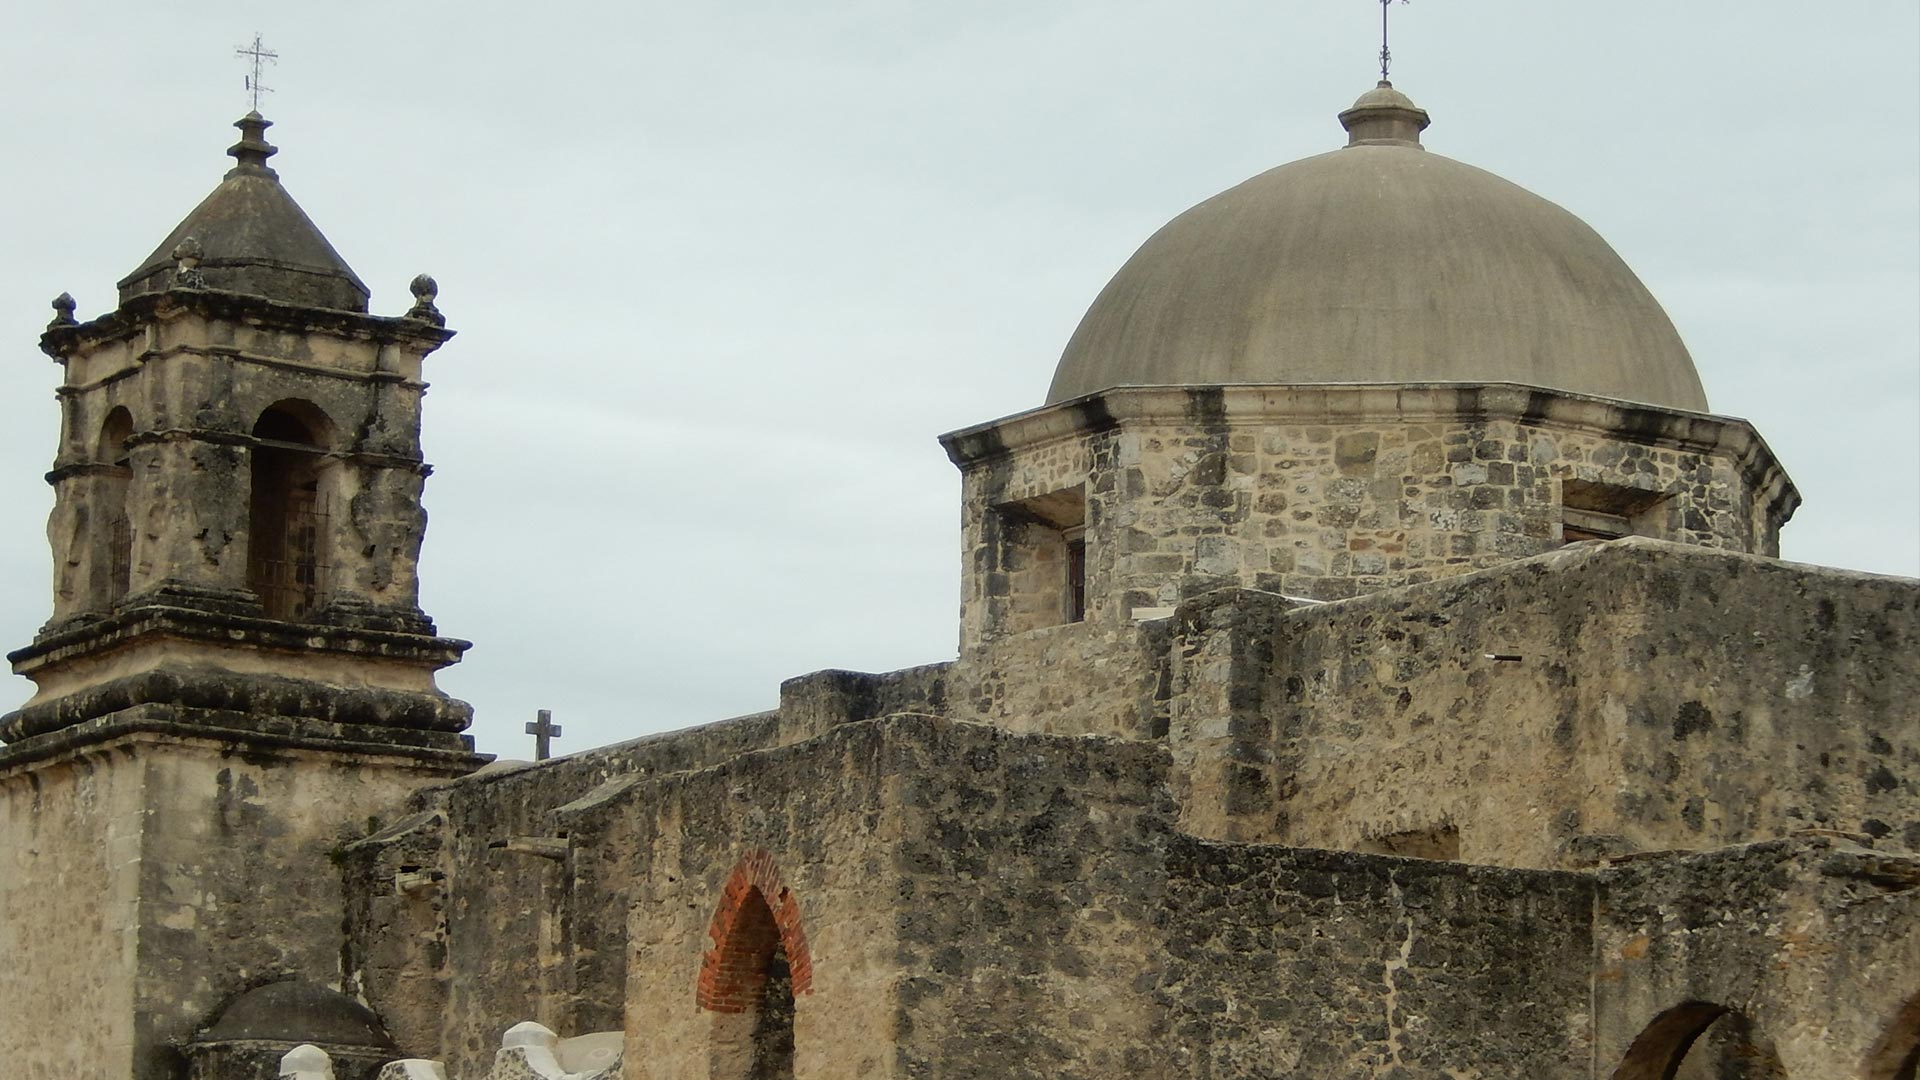 Visiting the Mission Trail in San Antonio